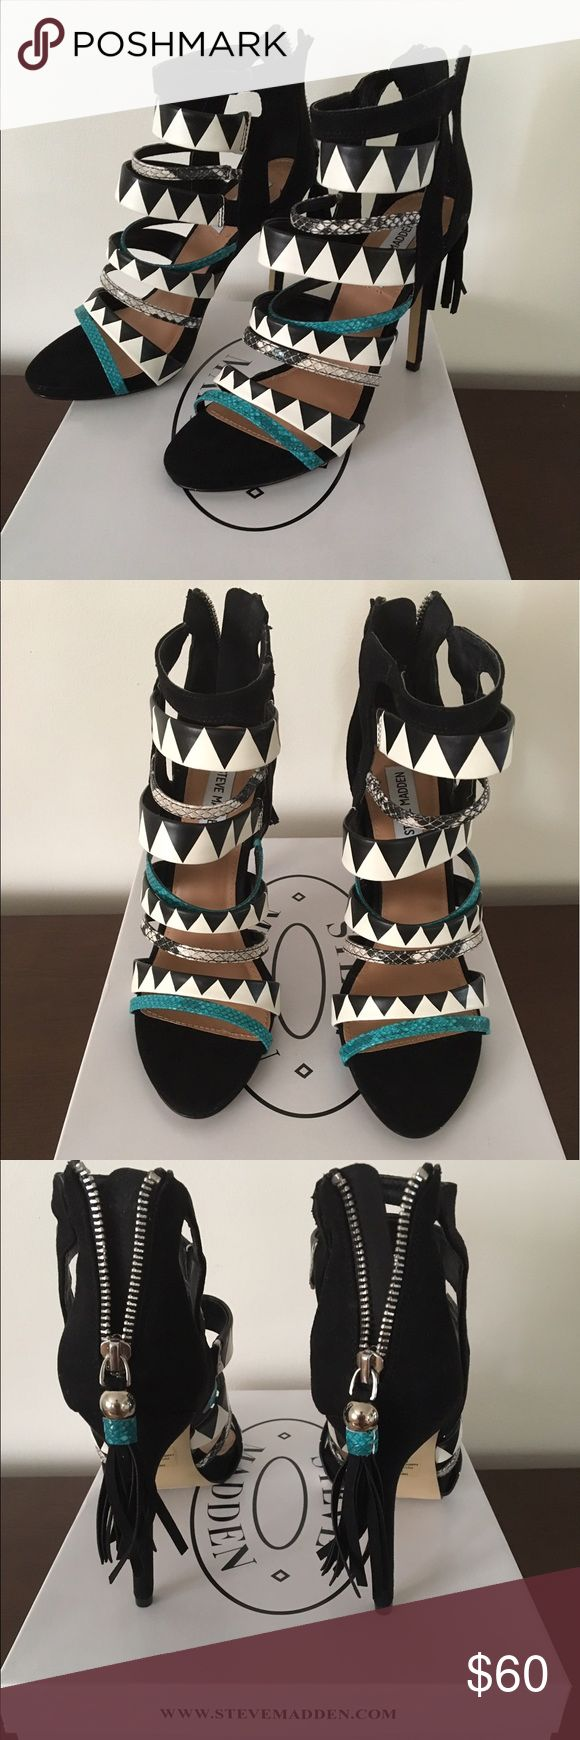 Steve Madden Heels Size 8.5 - Black and White Trending with a splash of Teal. Zip up back. Never worn, only tried on in store Steve Madden Shoes Heels